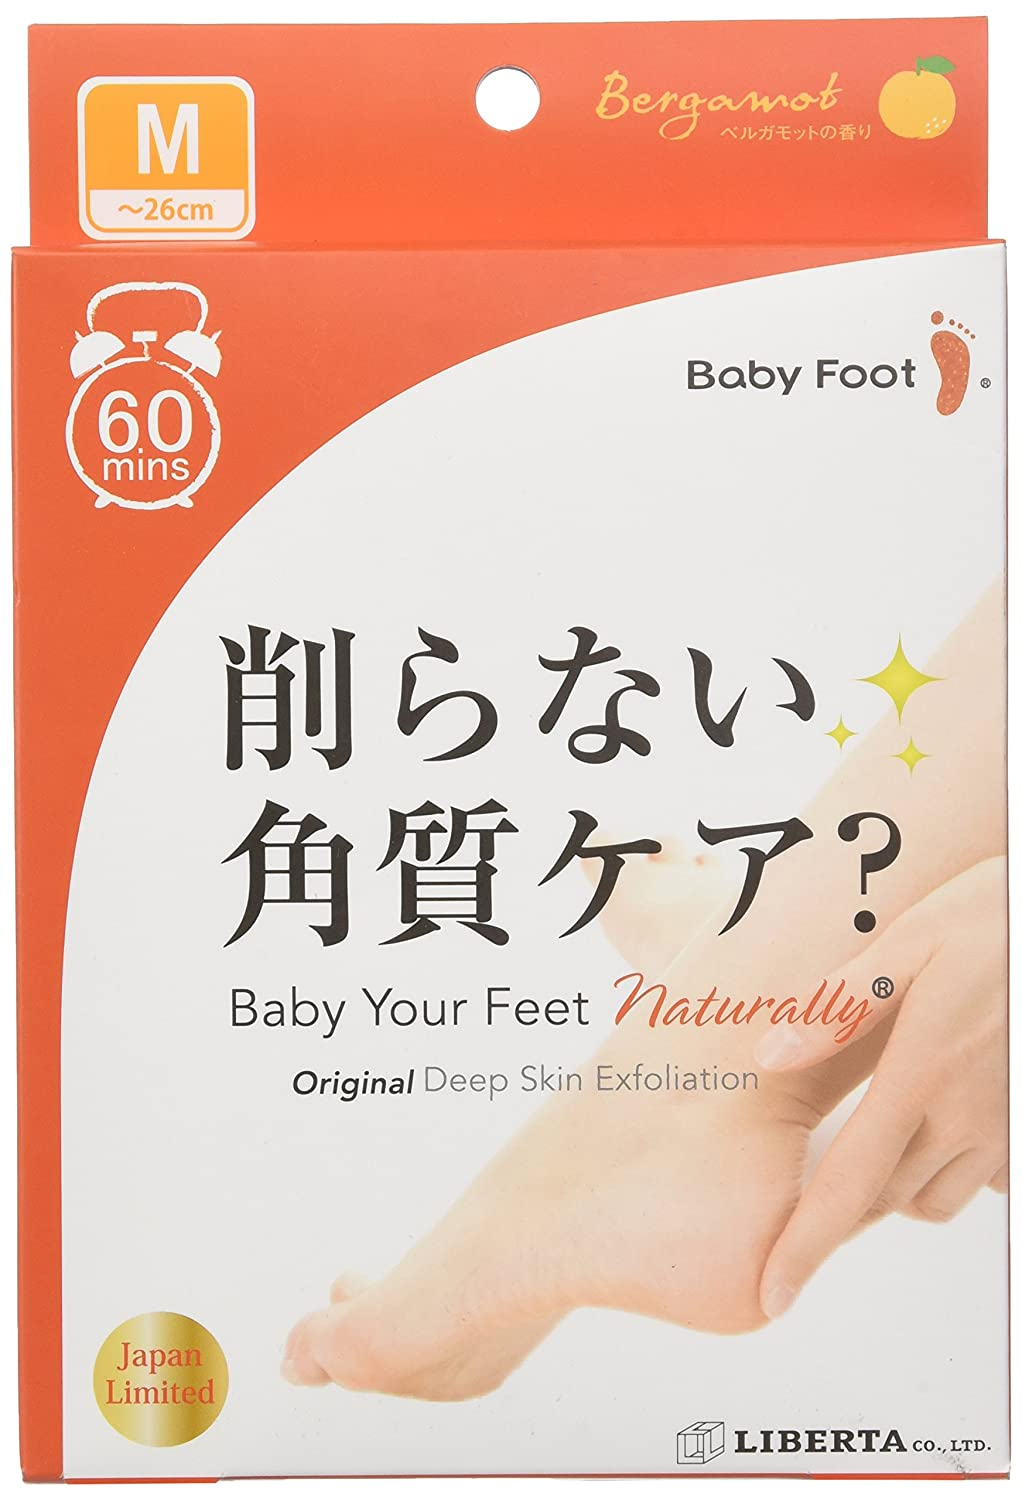 Baby Foot 60mins Japanese Ver. by Liberta